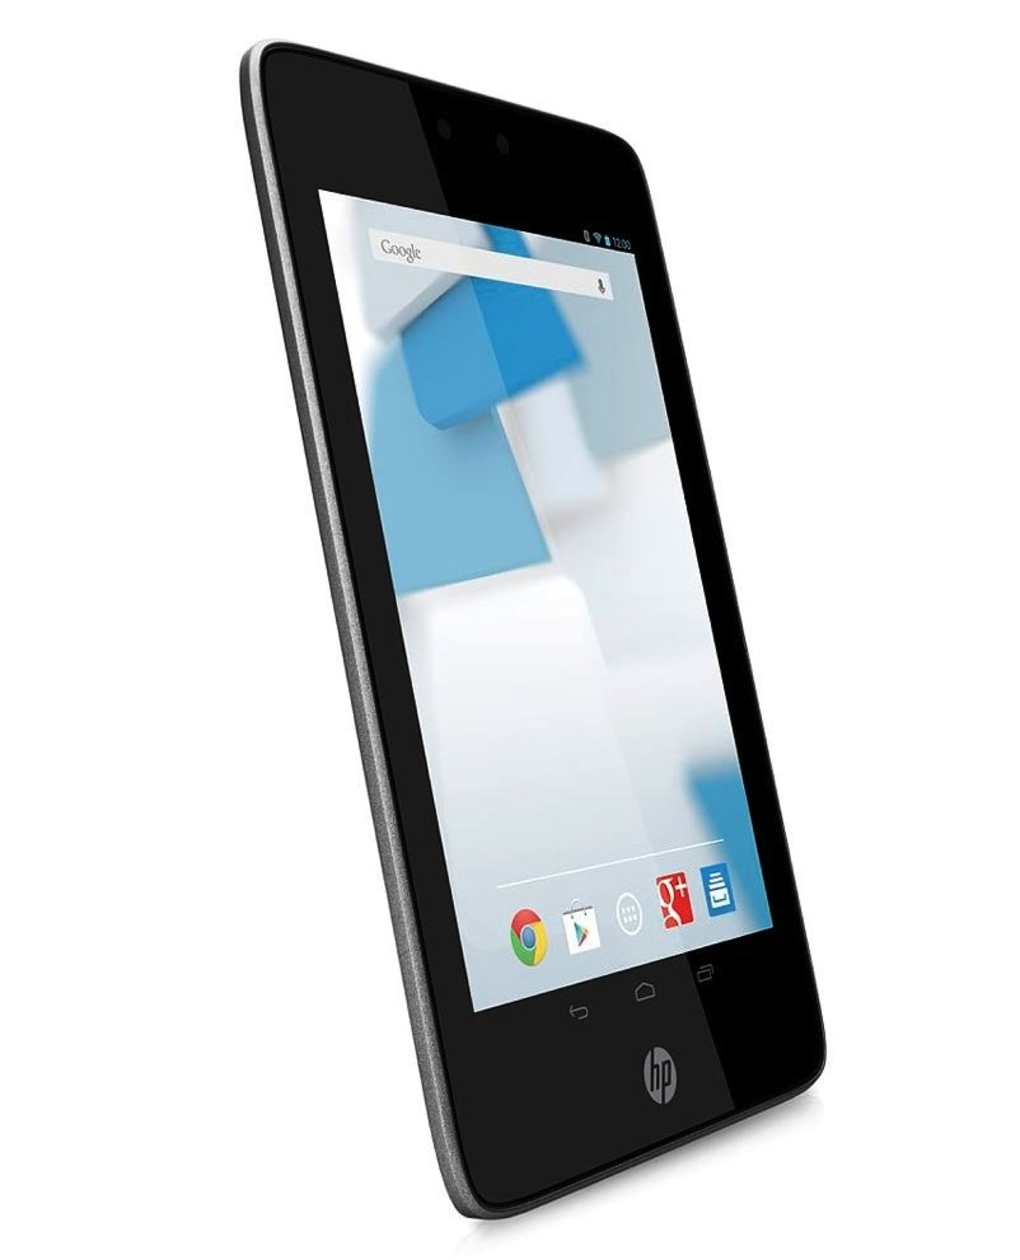 HP_Slate_7_HD_3G_front_verge_super_wide.